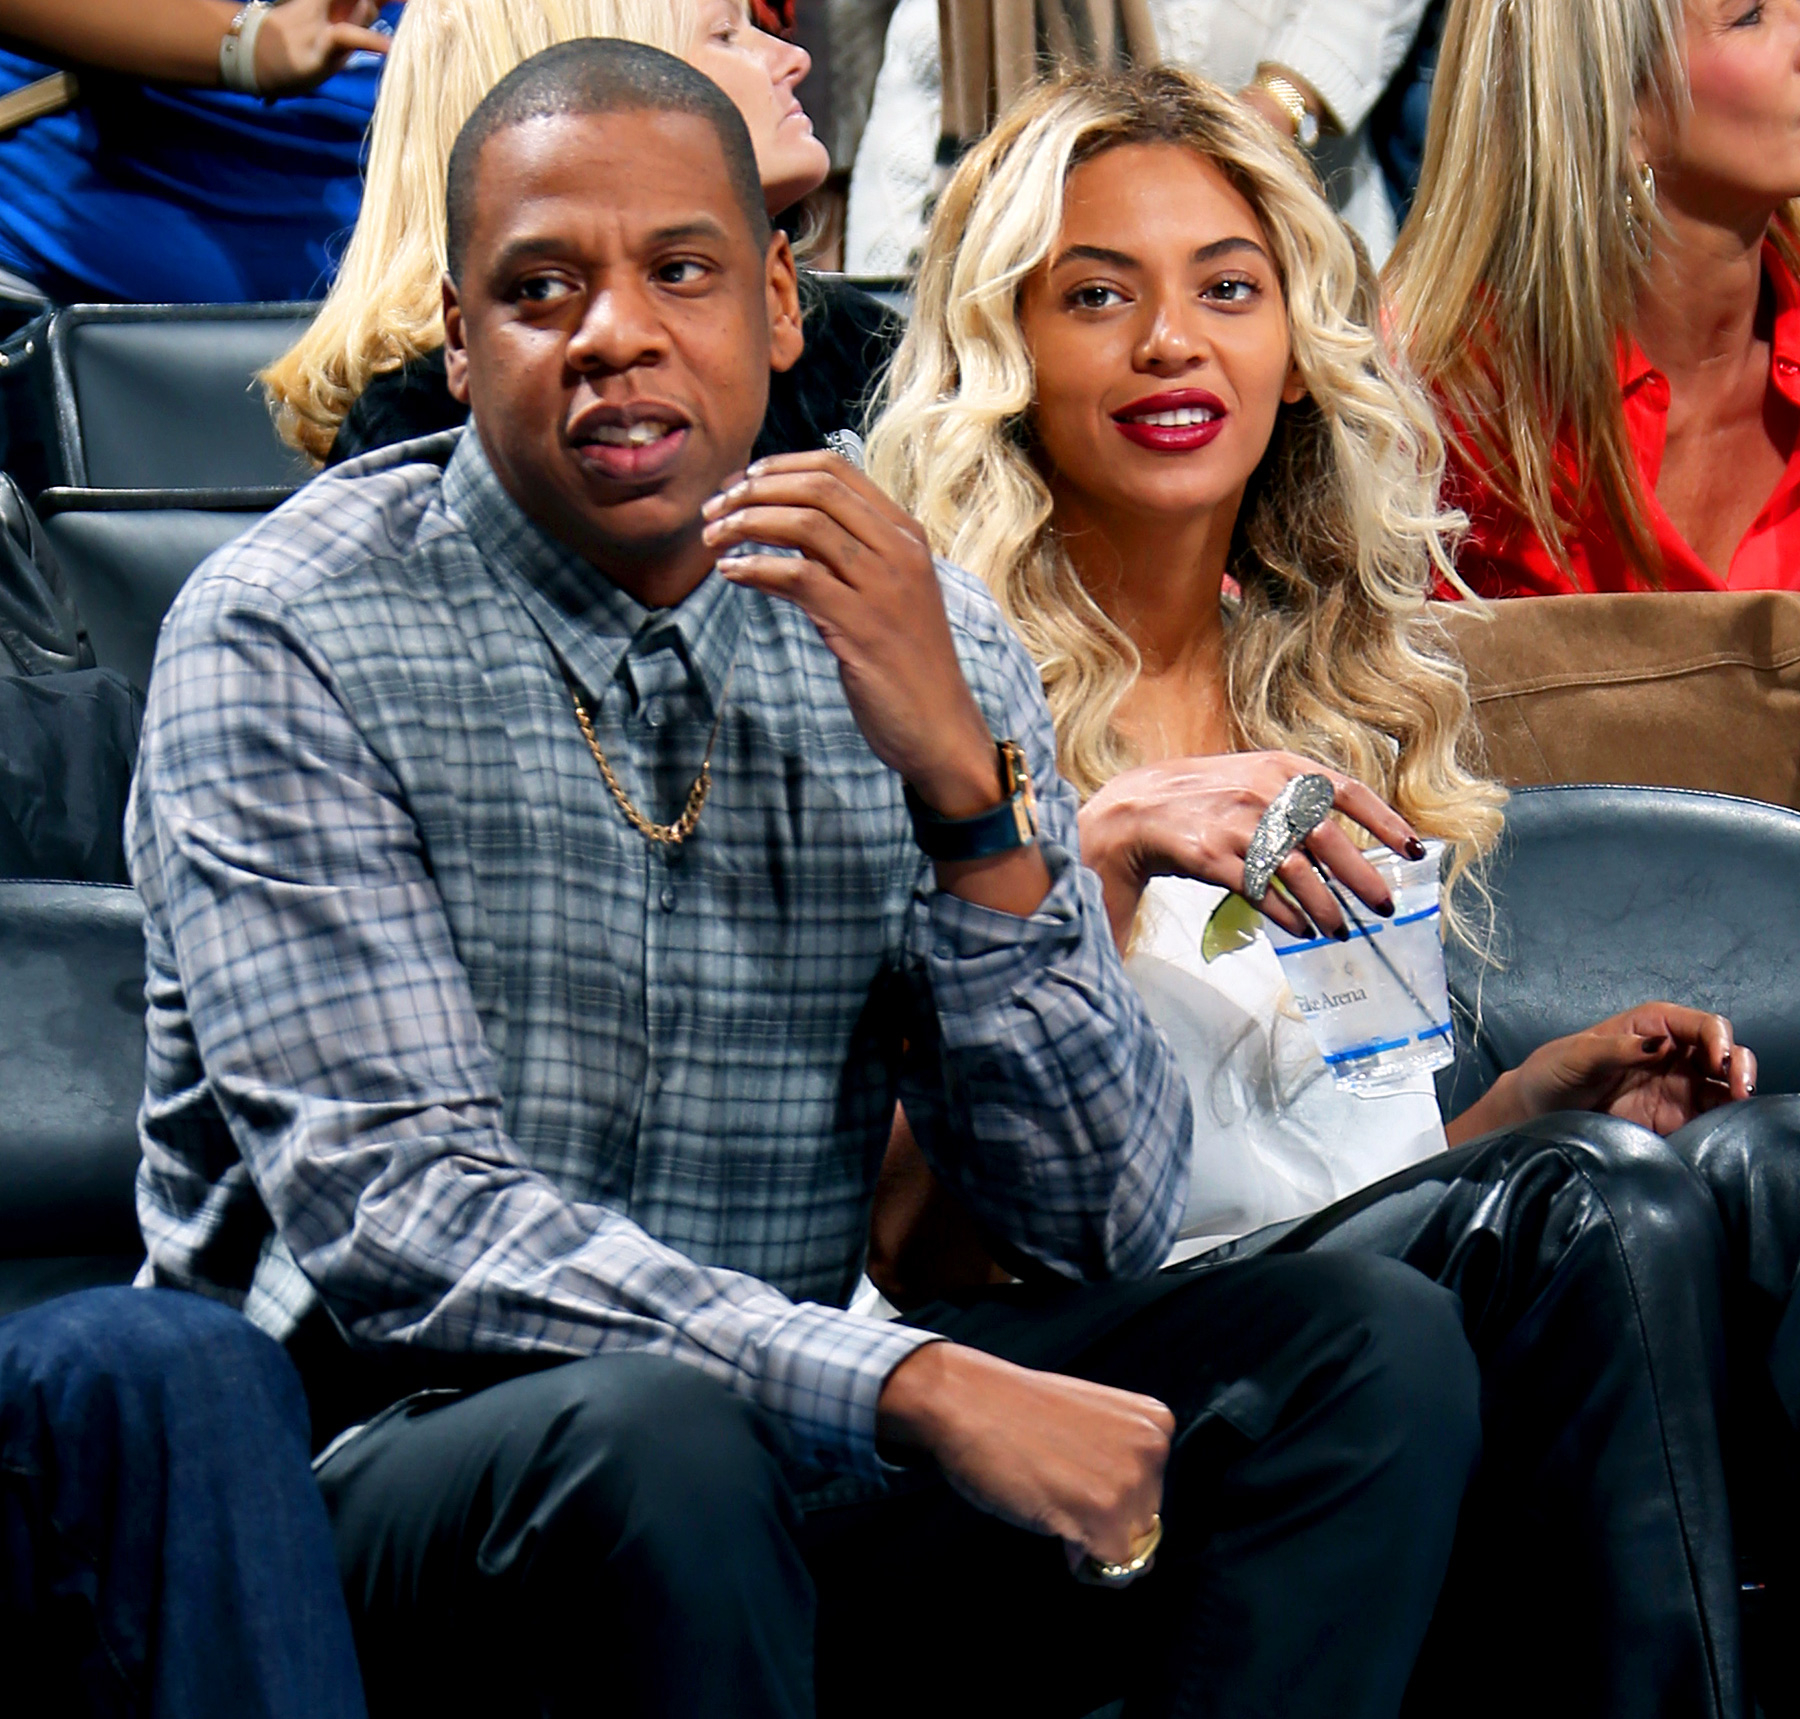 Report: Beyoncé and Jay-Z Shower North West With Dior Booties and OtherGifts picture